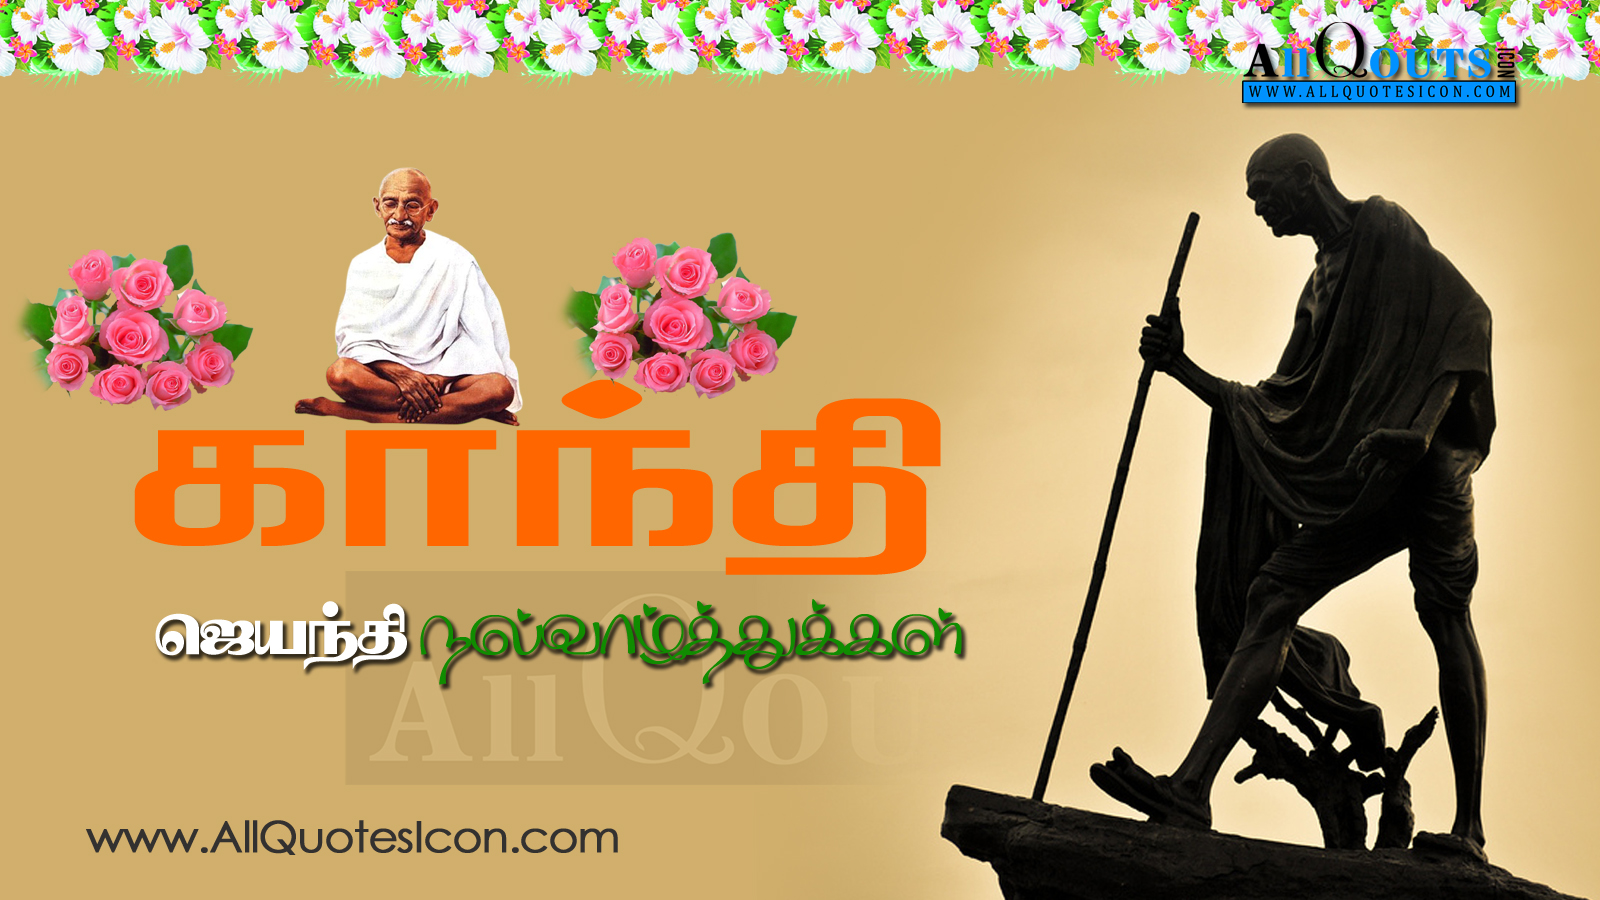 Happy Mahatma Gandhi Jayanthi Wishes In Tamil Hd Wallpapers Best